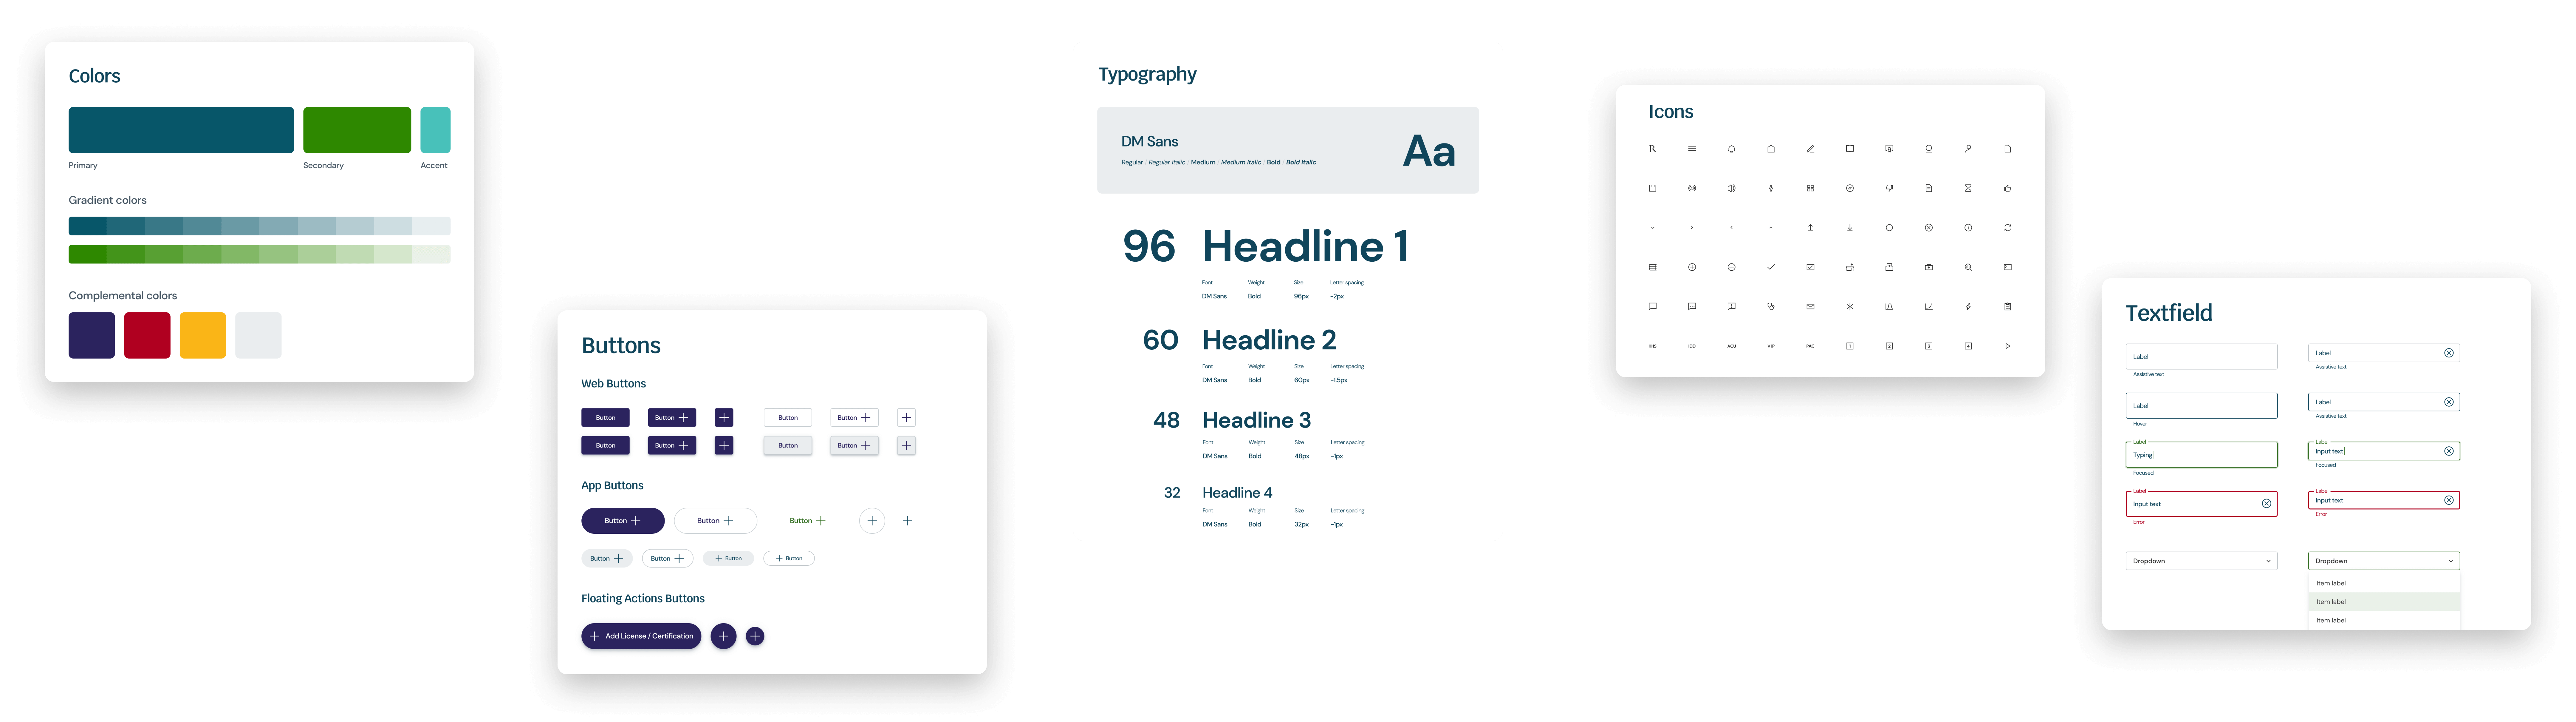 LIFT UX / UI design agency, created a Design System for 11,000 Healthcare Organizations visual cohesion to a suite of expanding product lines.